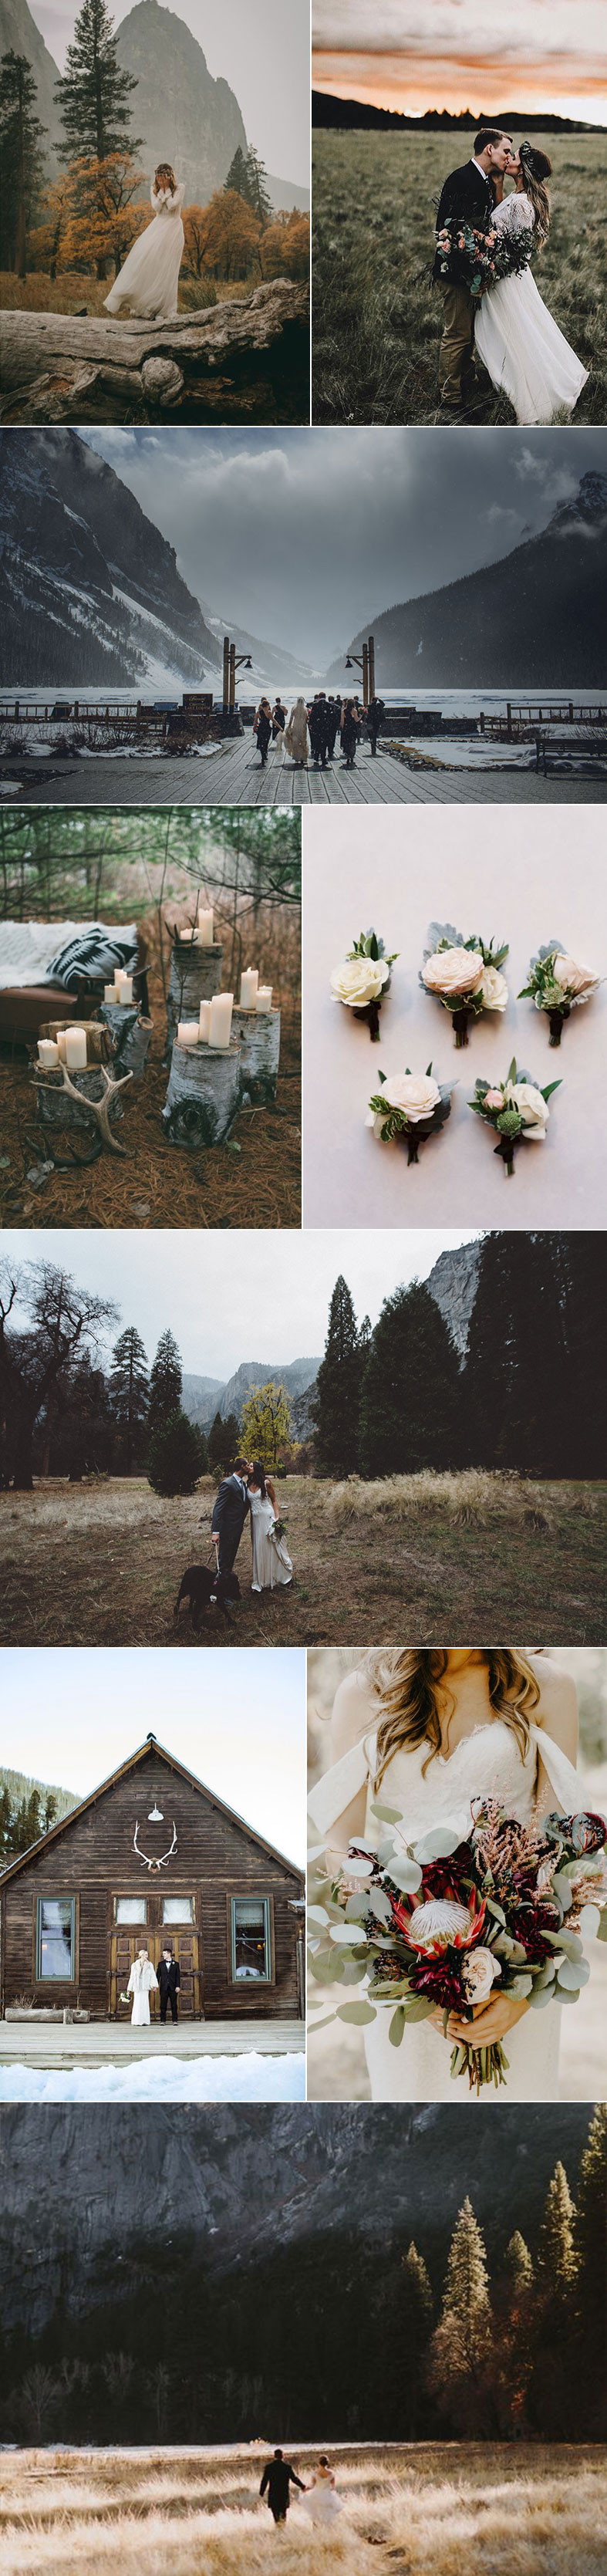 Inspiration For Mountain Weddings